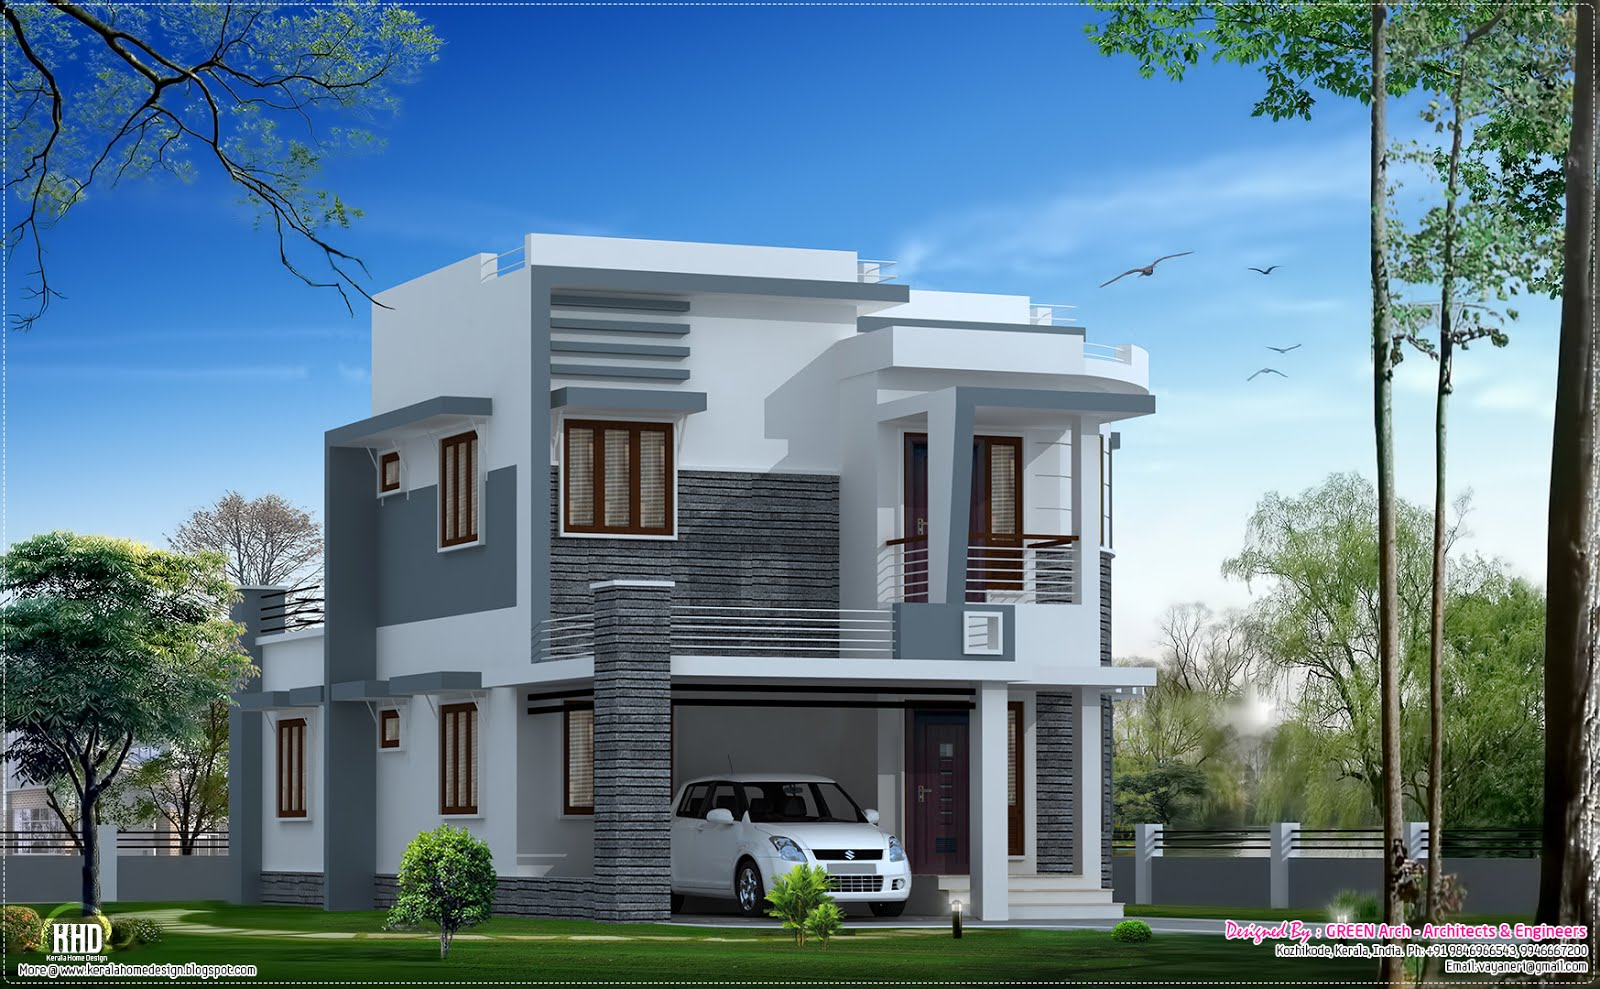 Beautiful 1650 modern home design kerala home design and floor plans Home arch design